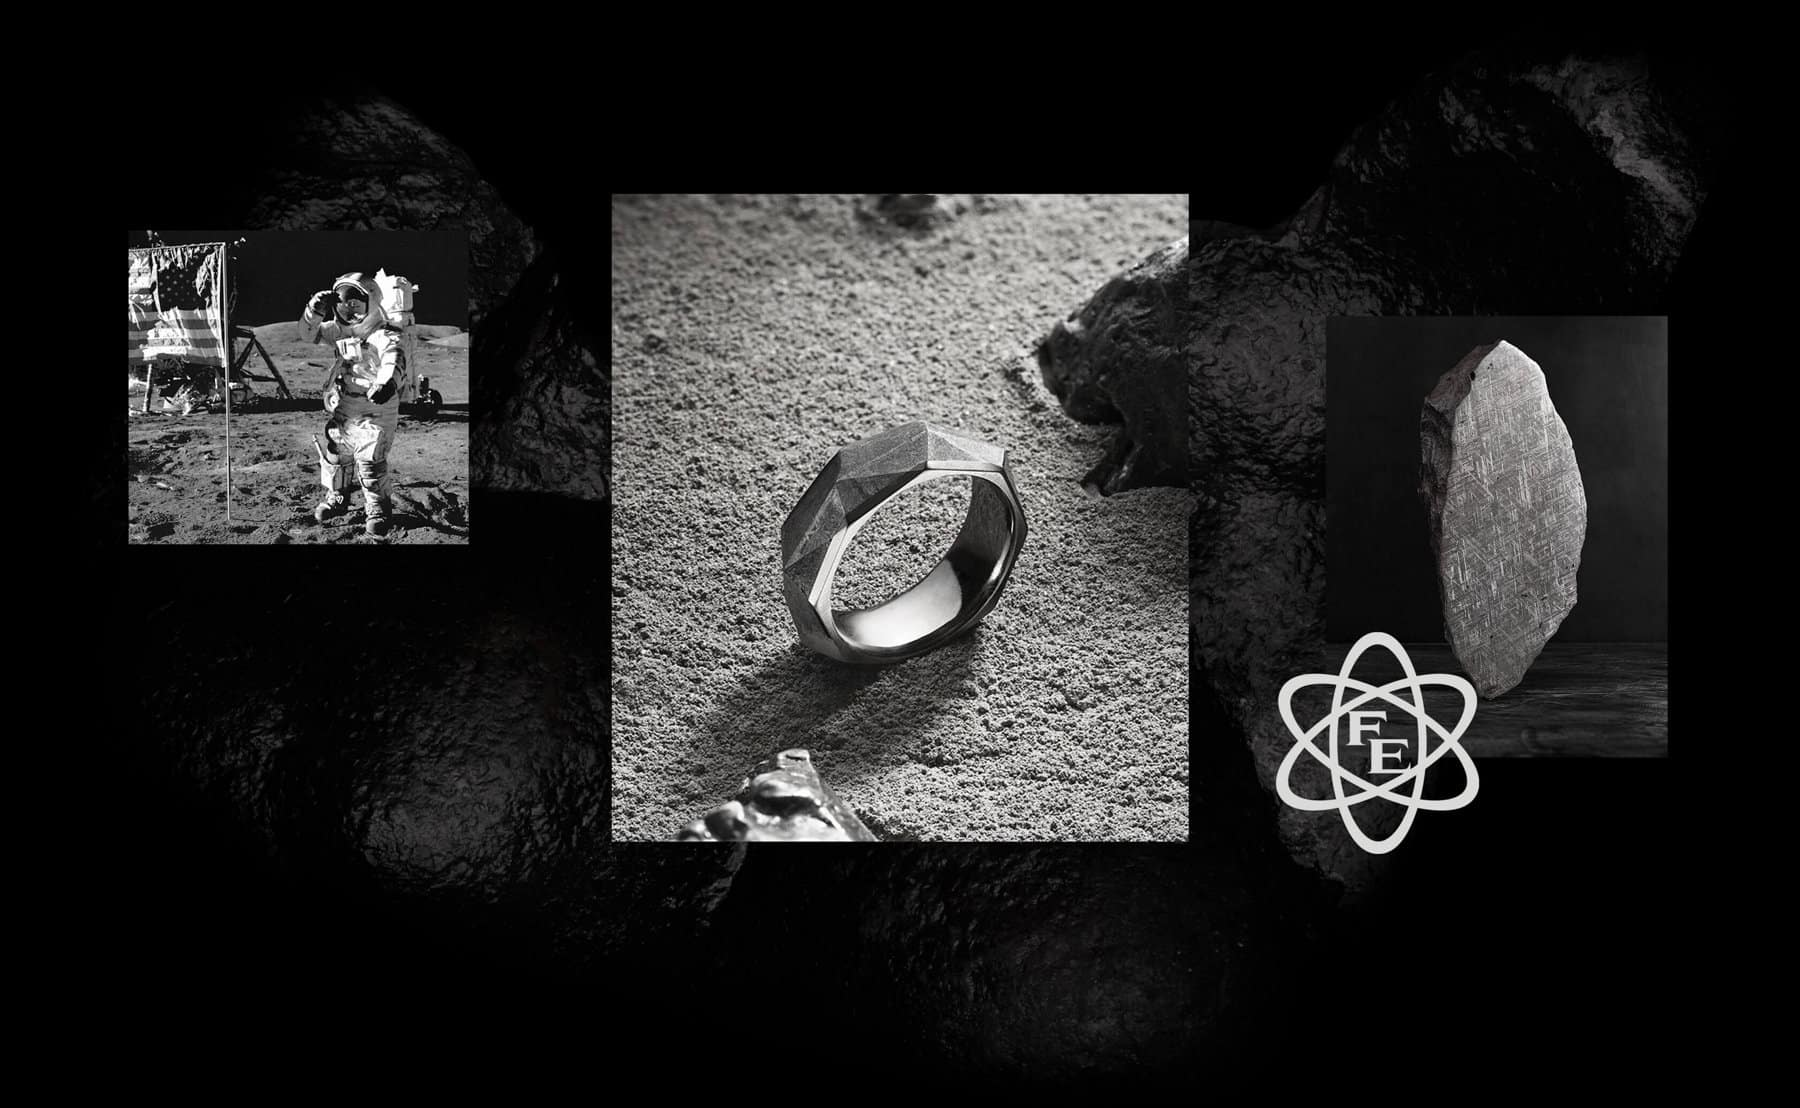 "A photo collage juxtaposes three black-and-white images. On the left is a vintage photo of an astronaut saluting an American flag on the moon. The center photo shows a David Yurman band ring standing upright on top of a grey, rocky surface. The ring features a sterling silver interior and a faceted meteorite exterior. On the right, a photo shows a close-up image of the crosshatchings in Gibeon meteorite next to a black atomic symbol with ""FE,"" the David Yurman hallmark for meteorite."